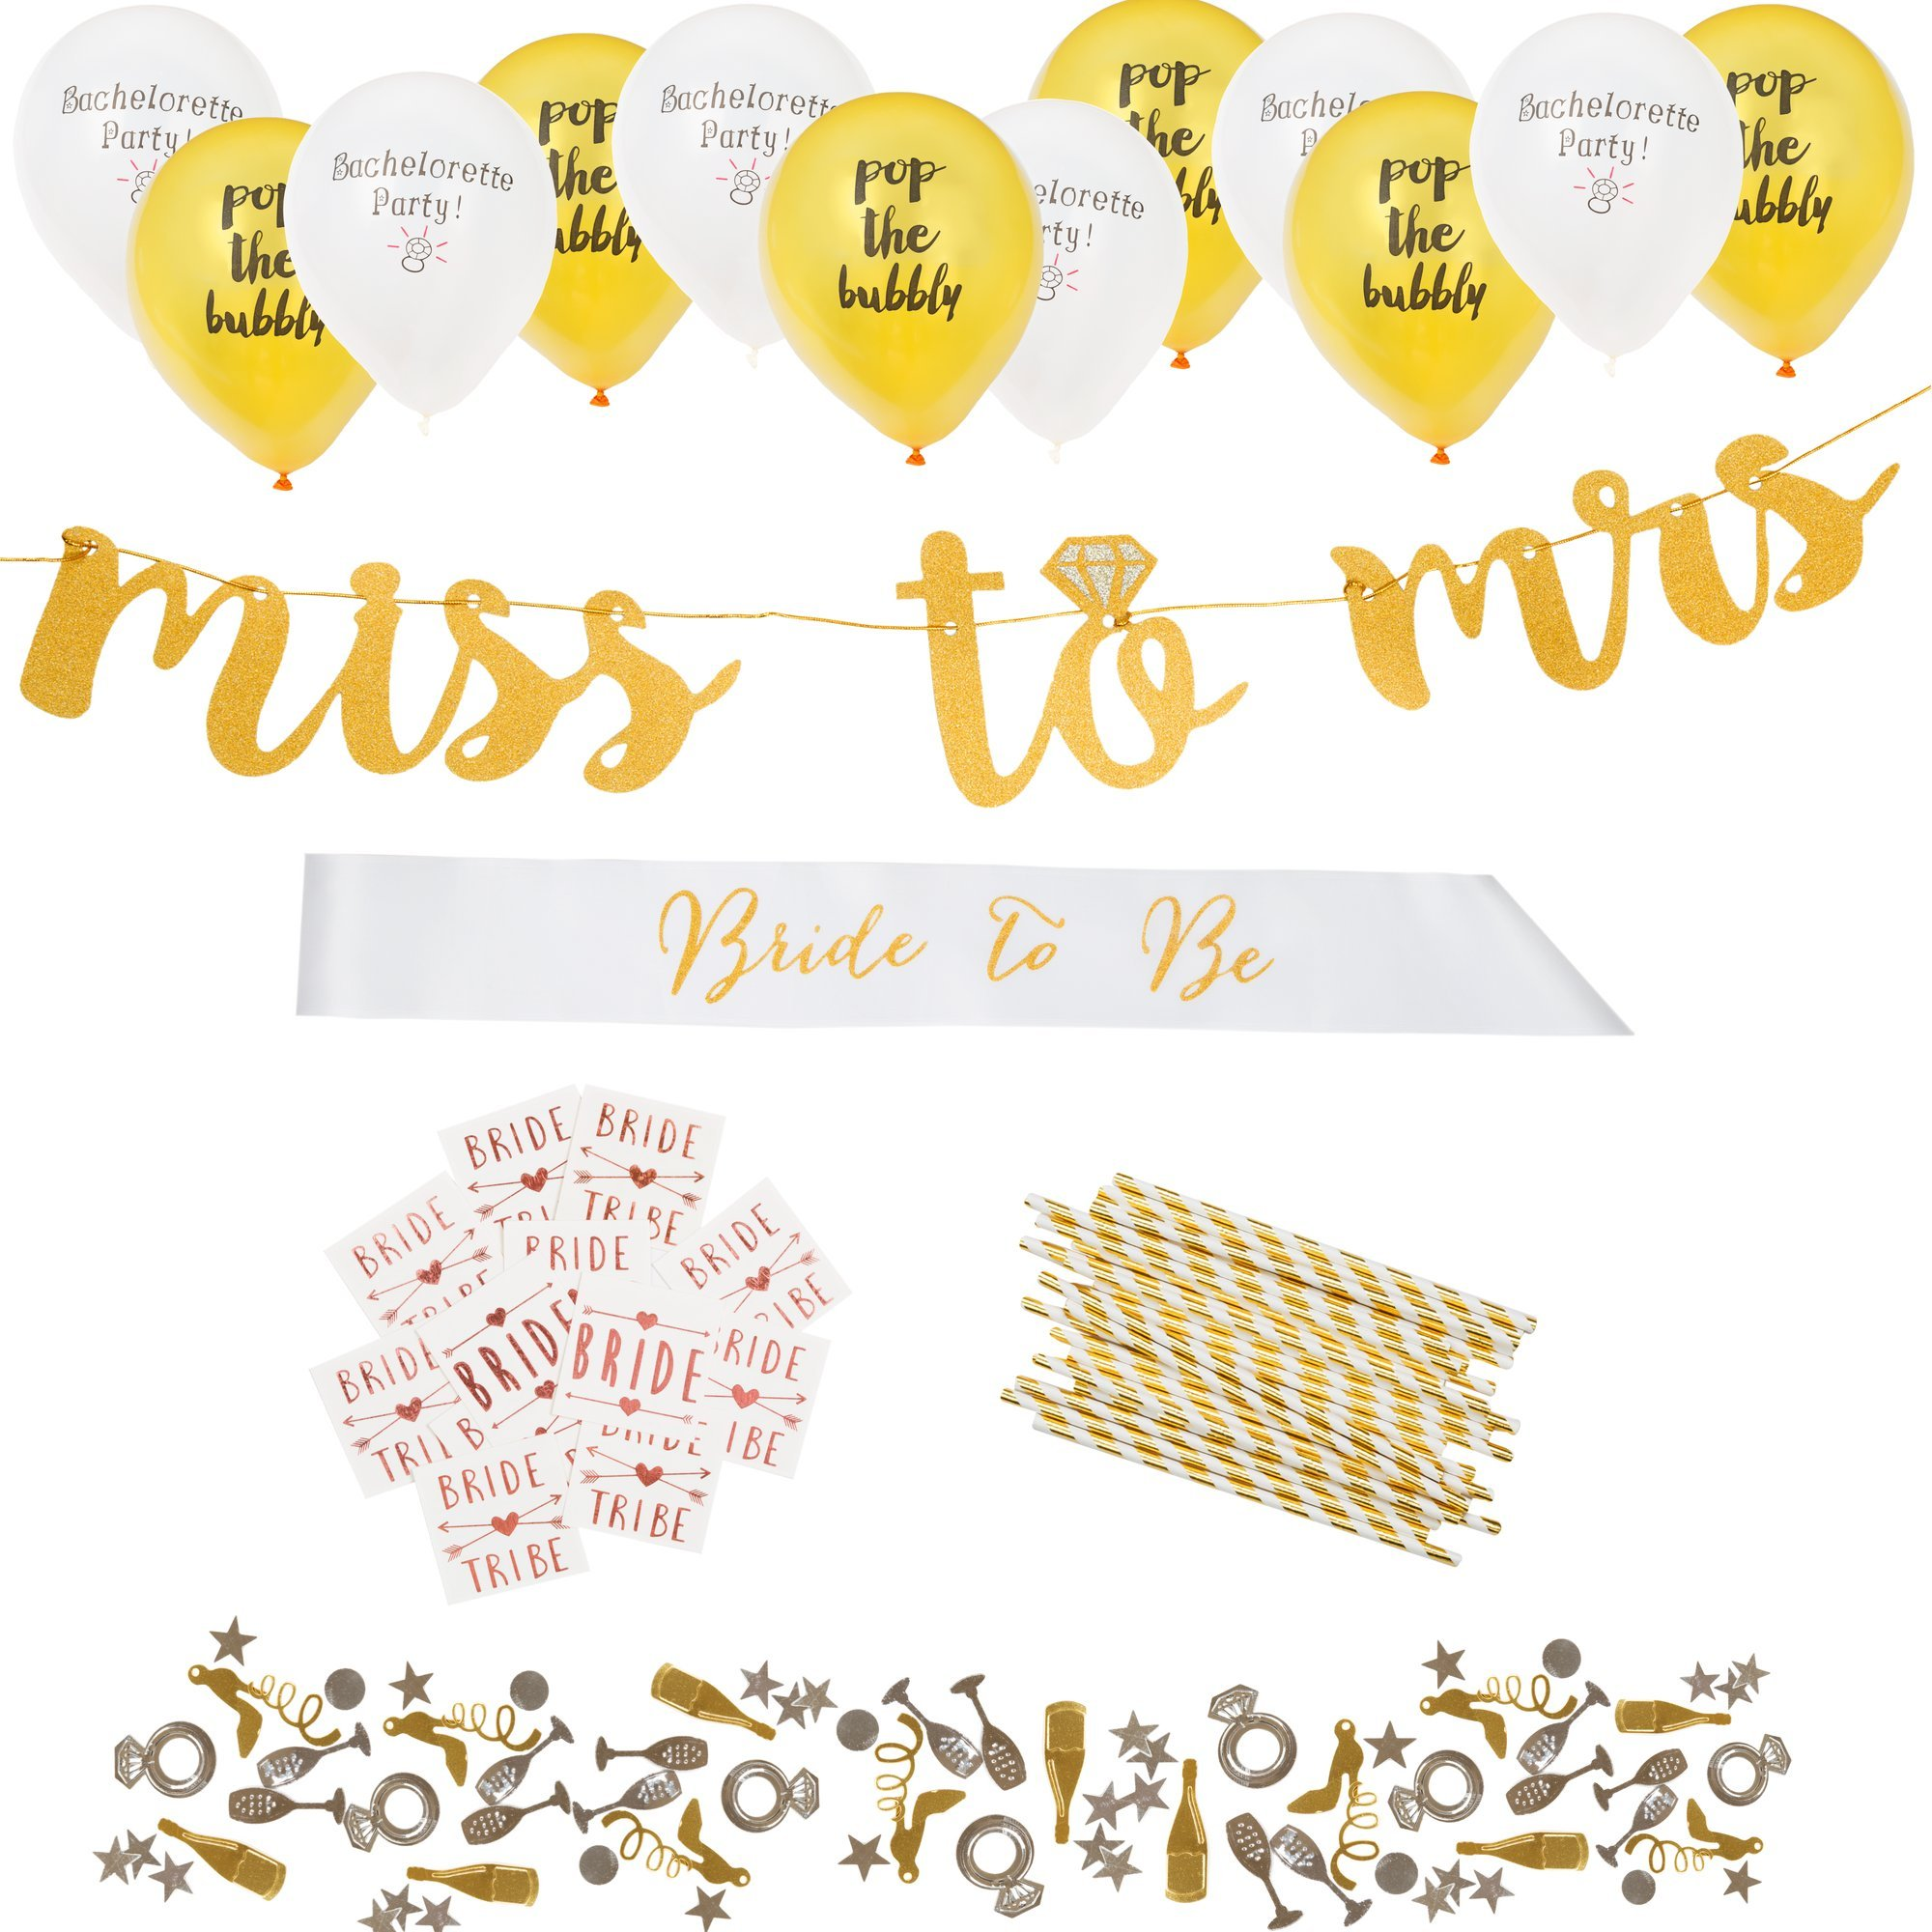 Complete Bachelorette Party Decorations Kit by ASUSA - Miss to Mrs Banner, Bride to Be Sash, Bride Tribe Flash Tattoos, Photo Booth Props, & More - Engagement Gifts and Bridal Shower Decorations by ASUSA